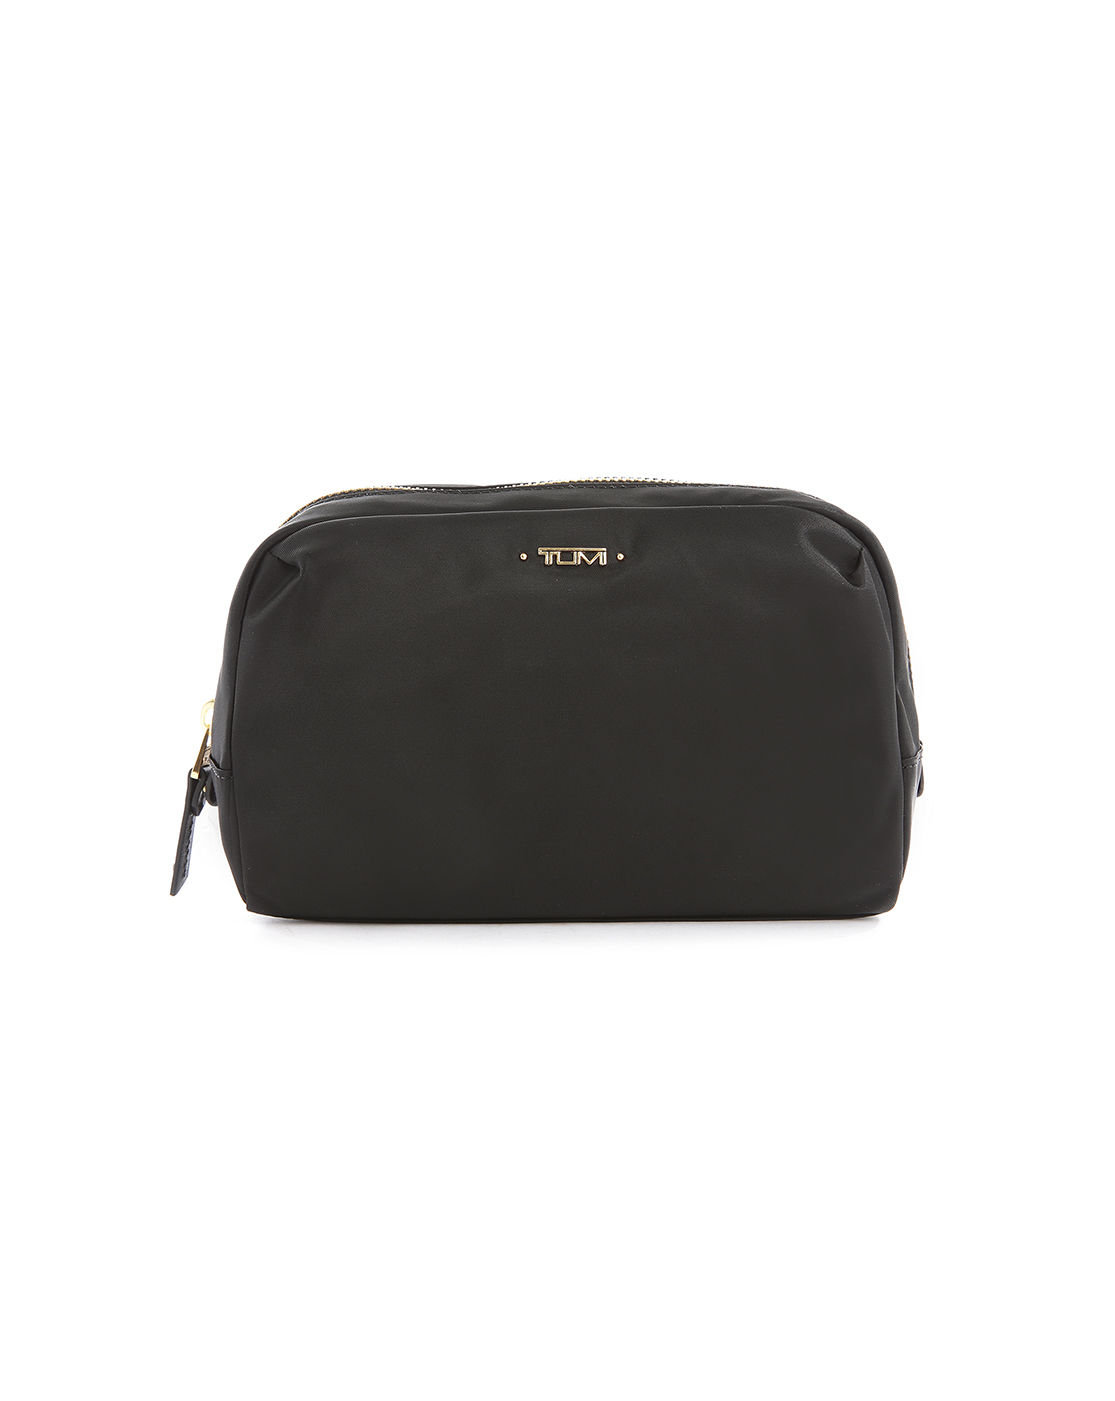 Mini Laundry Bag Tumi Serra Pouch Small Black Wash Bag In Black For Men Lyst